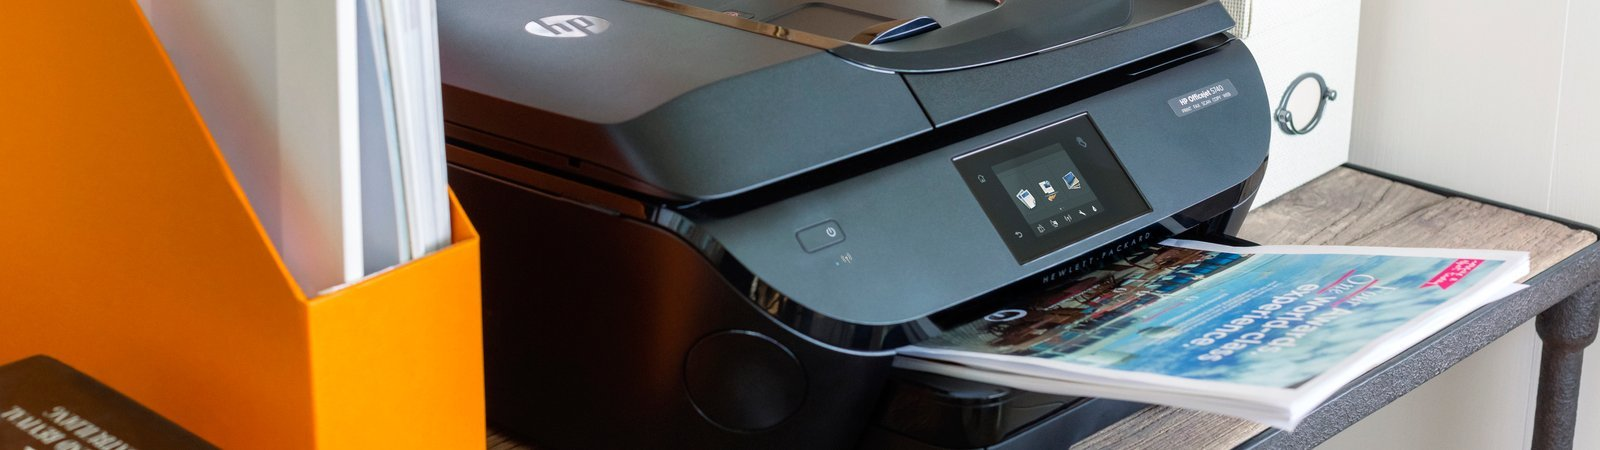 Types of HP Printer